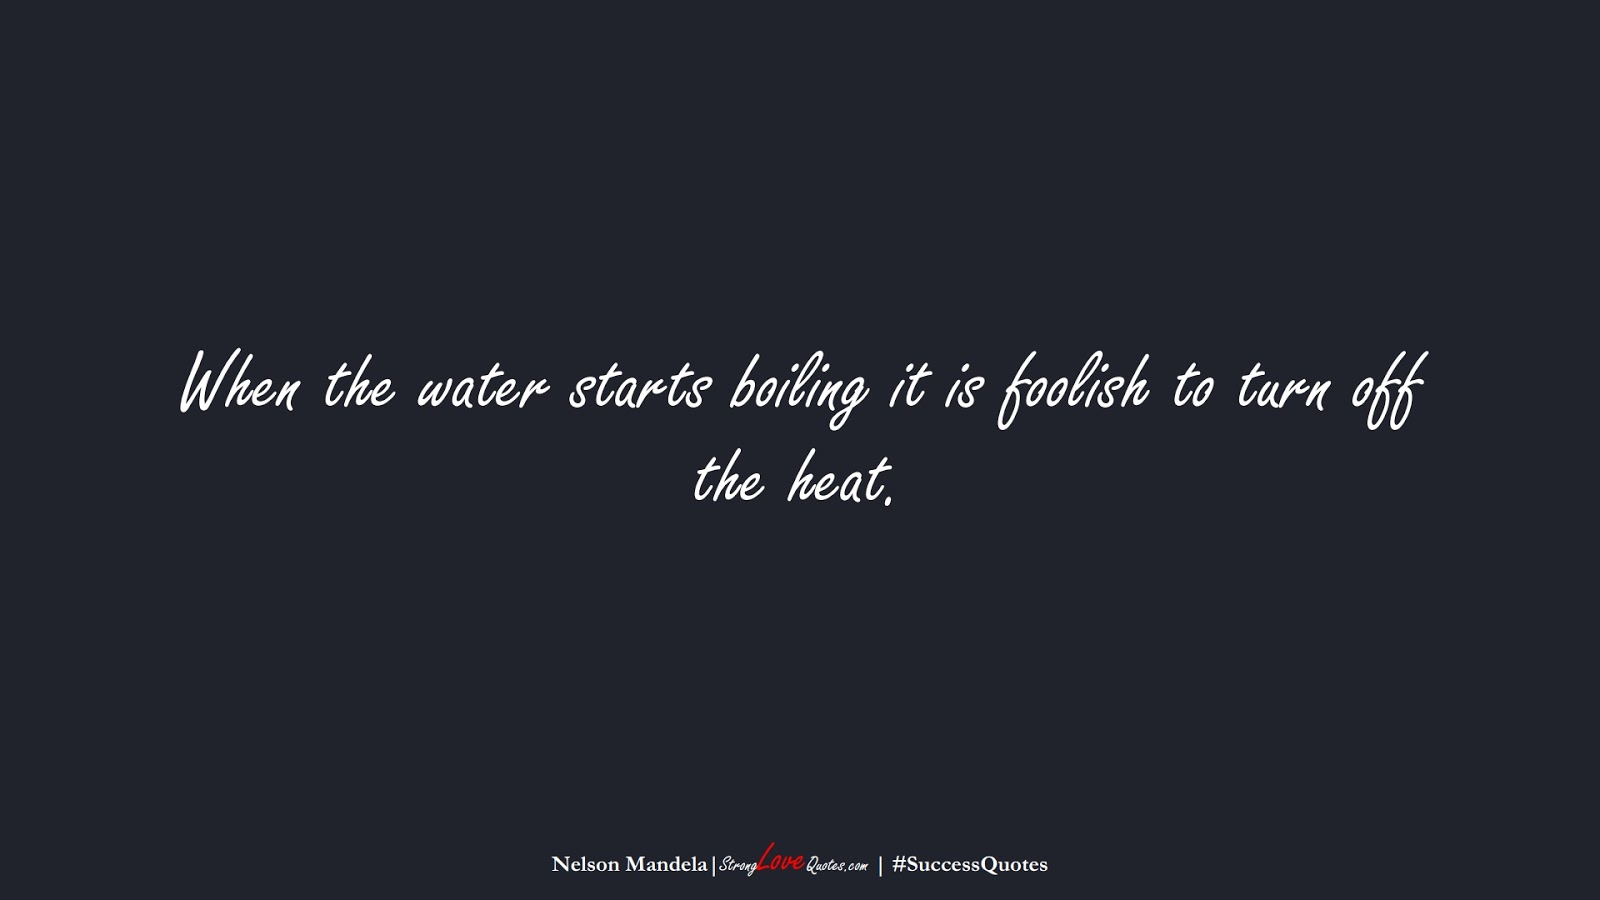 When the water starts boiling it is foolish to turn off the heat. (Nelson Mandela);  #SuccessQuotes